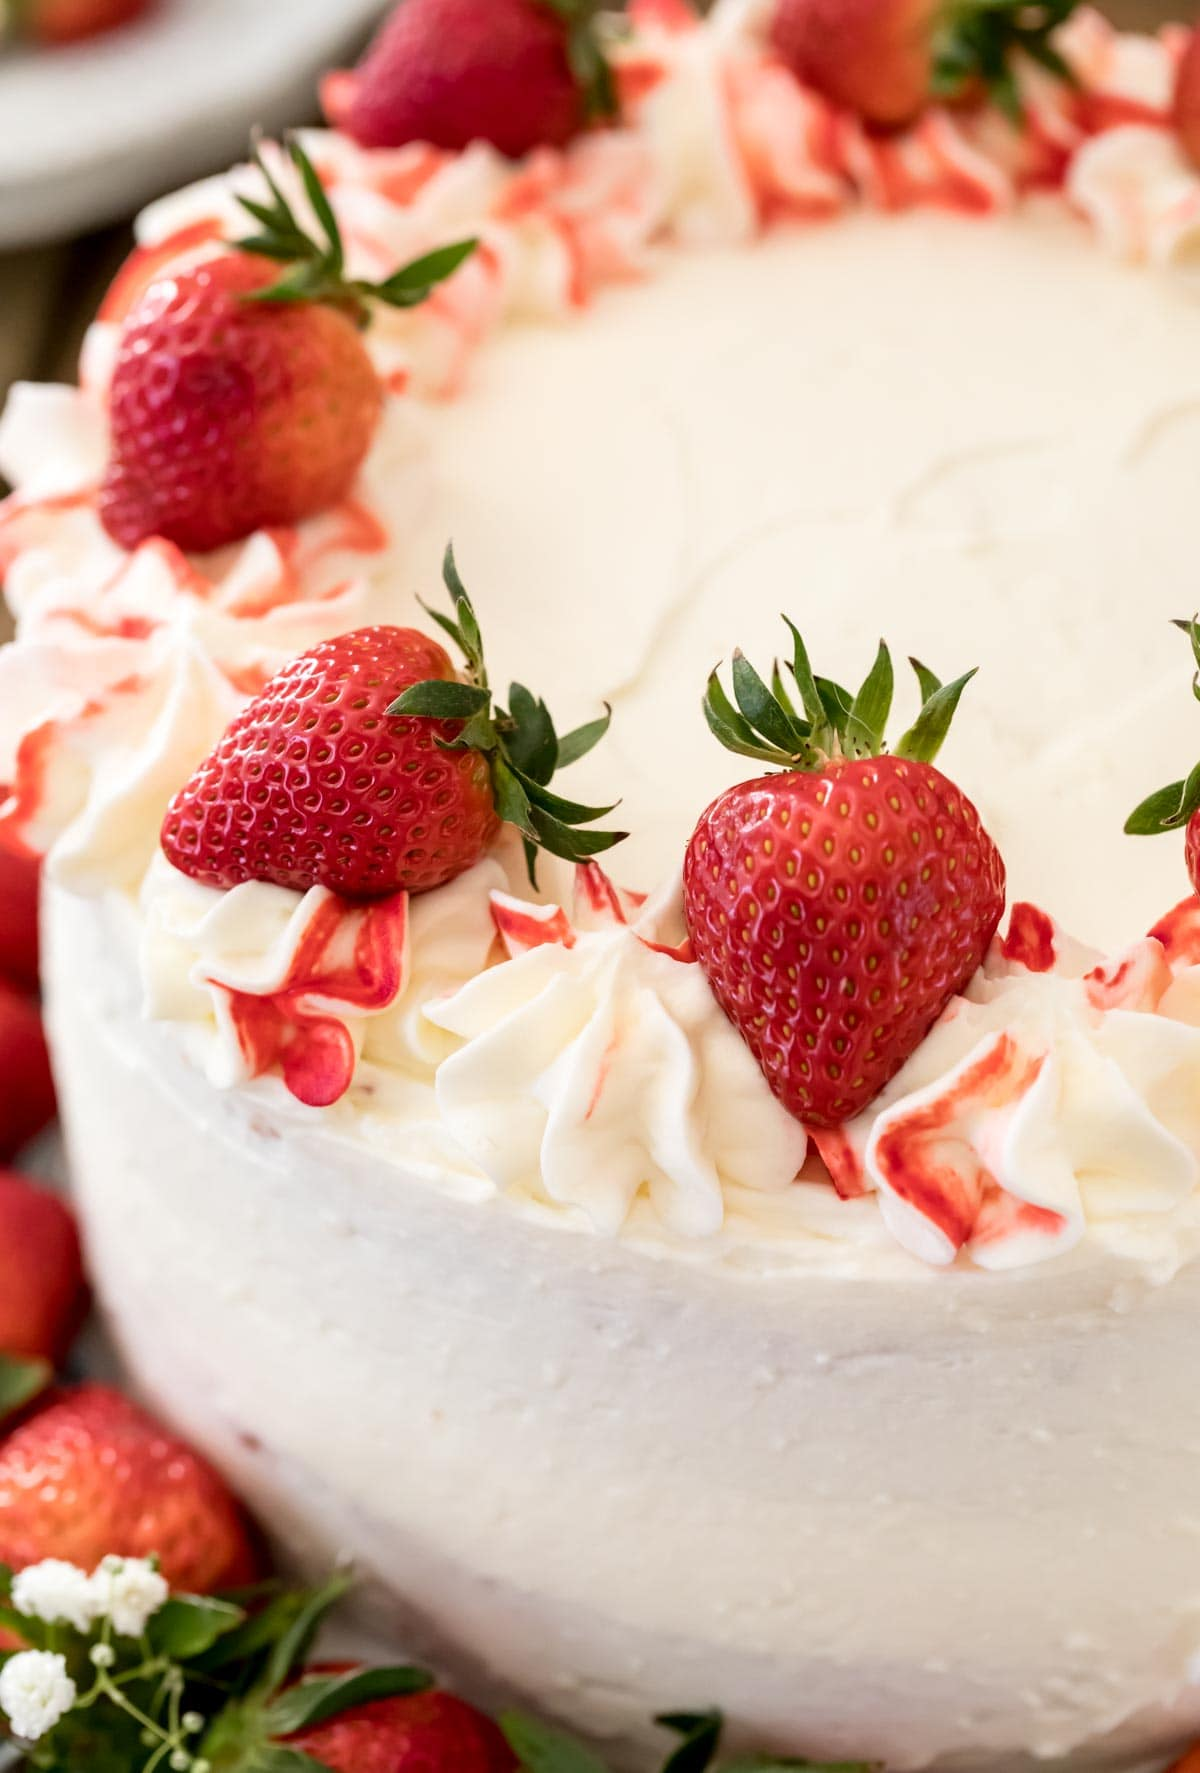 white iced cake with red strawberries